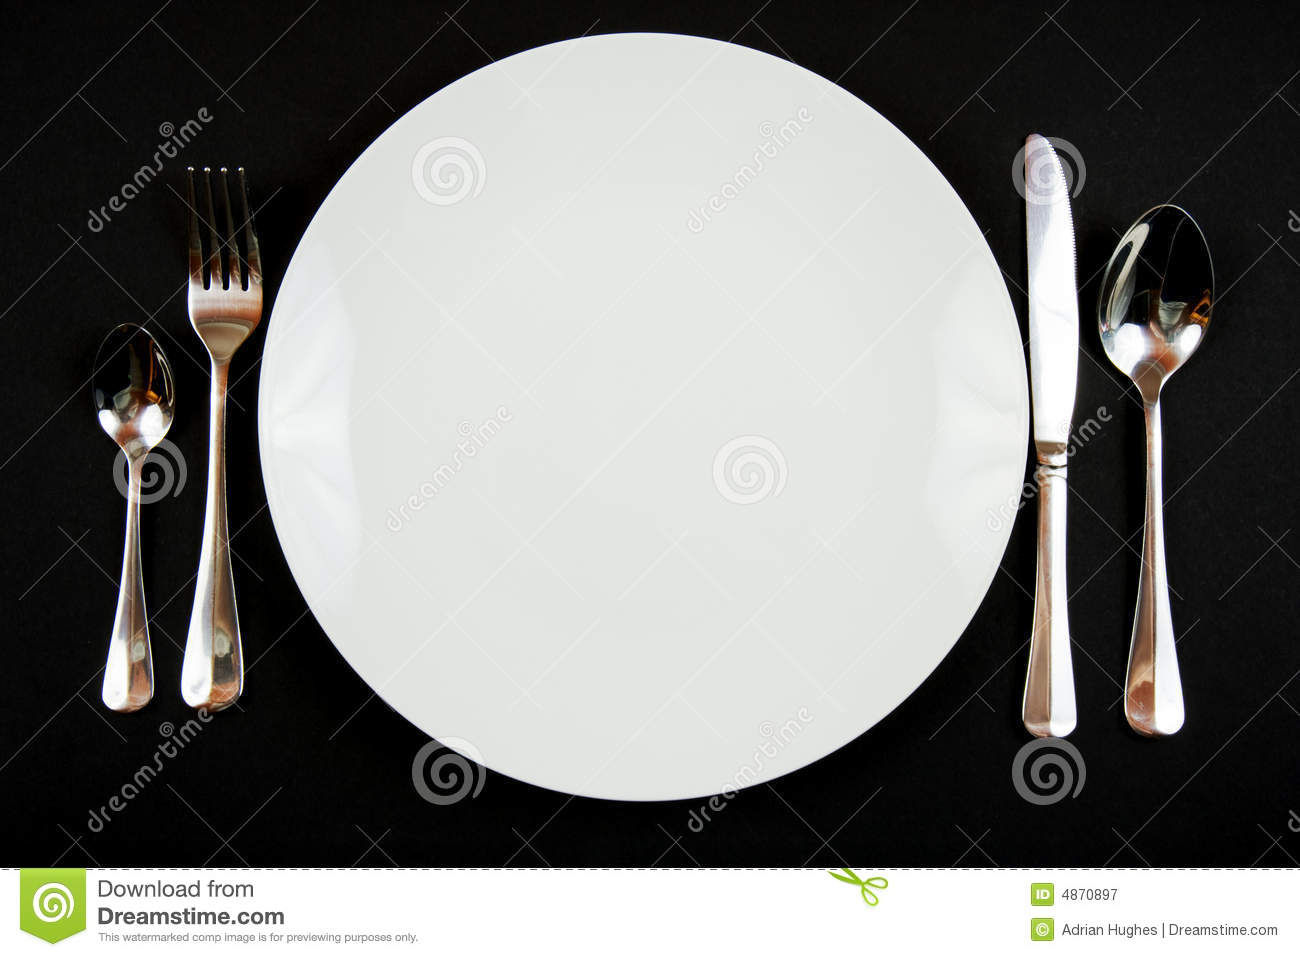 Dinner Setting dinner setting royalty free stock photography - image: 4870897